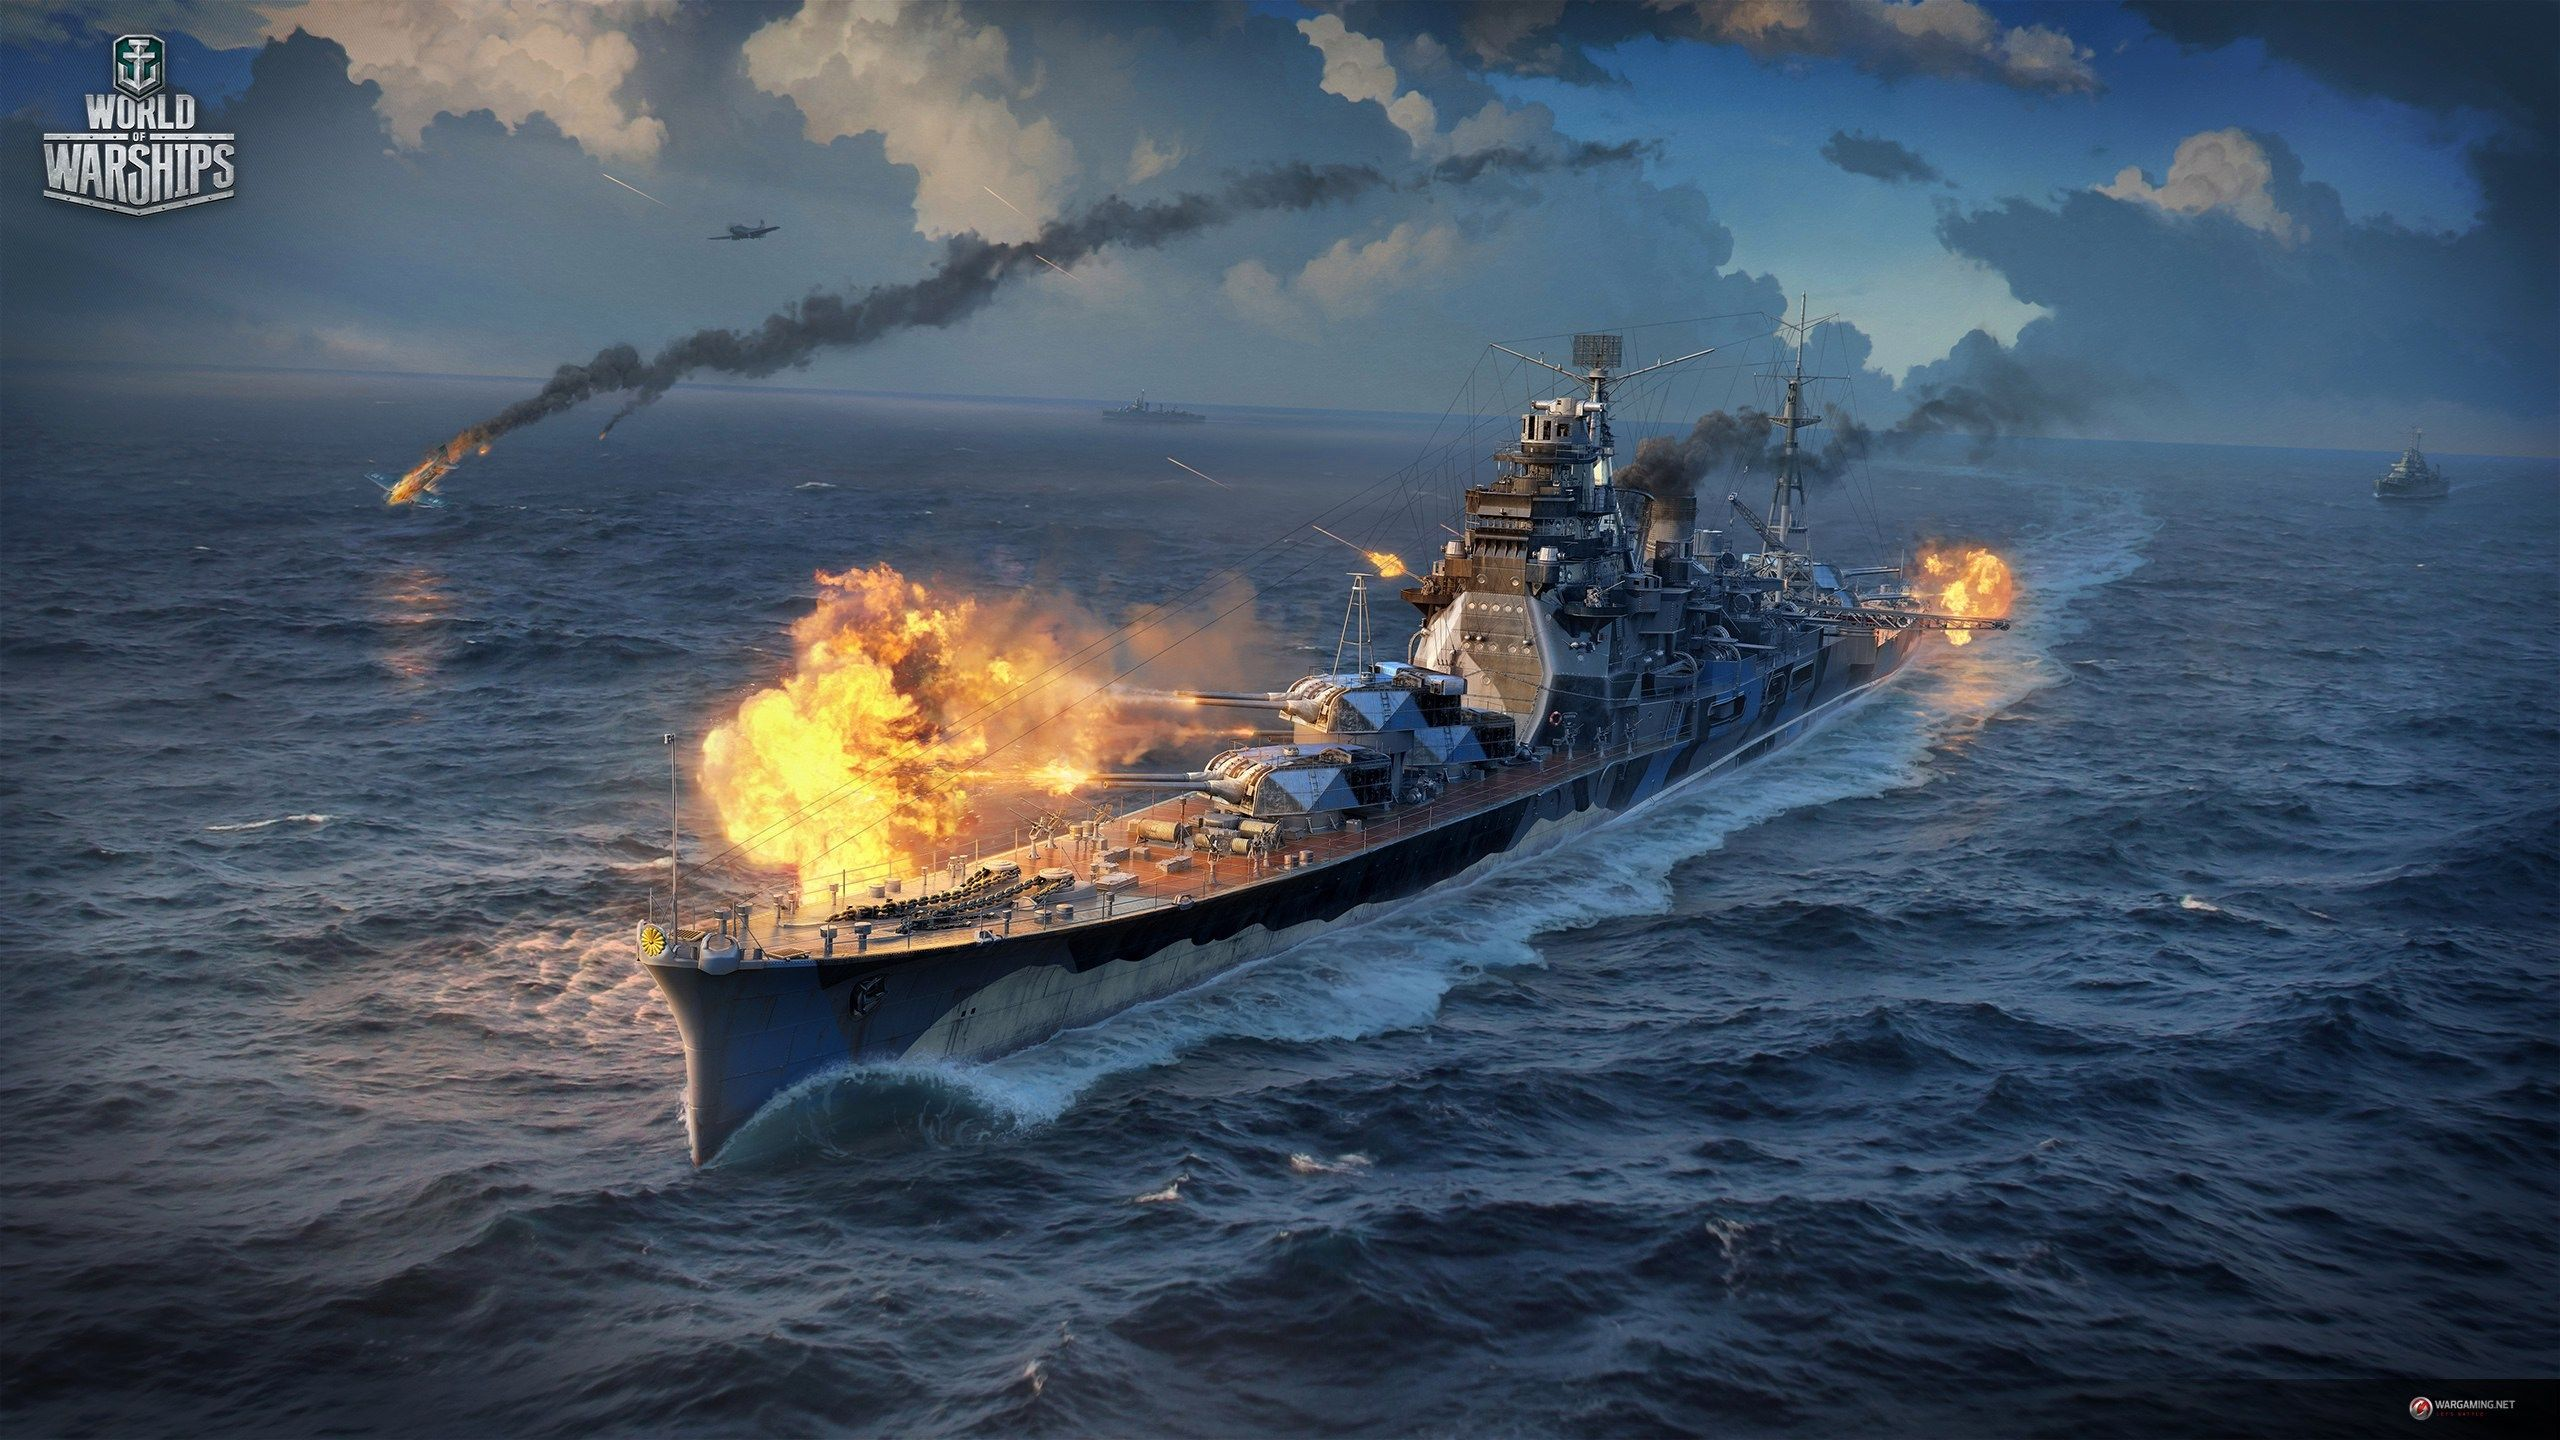 2560x1440 World Of Warships Game Wallpaper World Of Warships Wallpaper Warship Widescreen Wallpaper